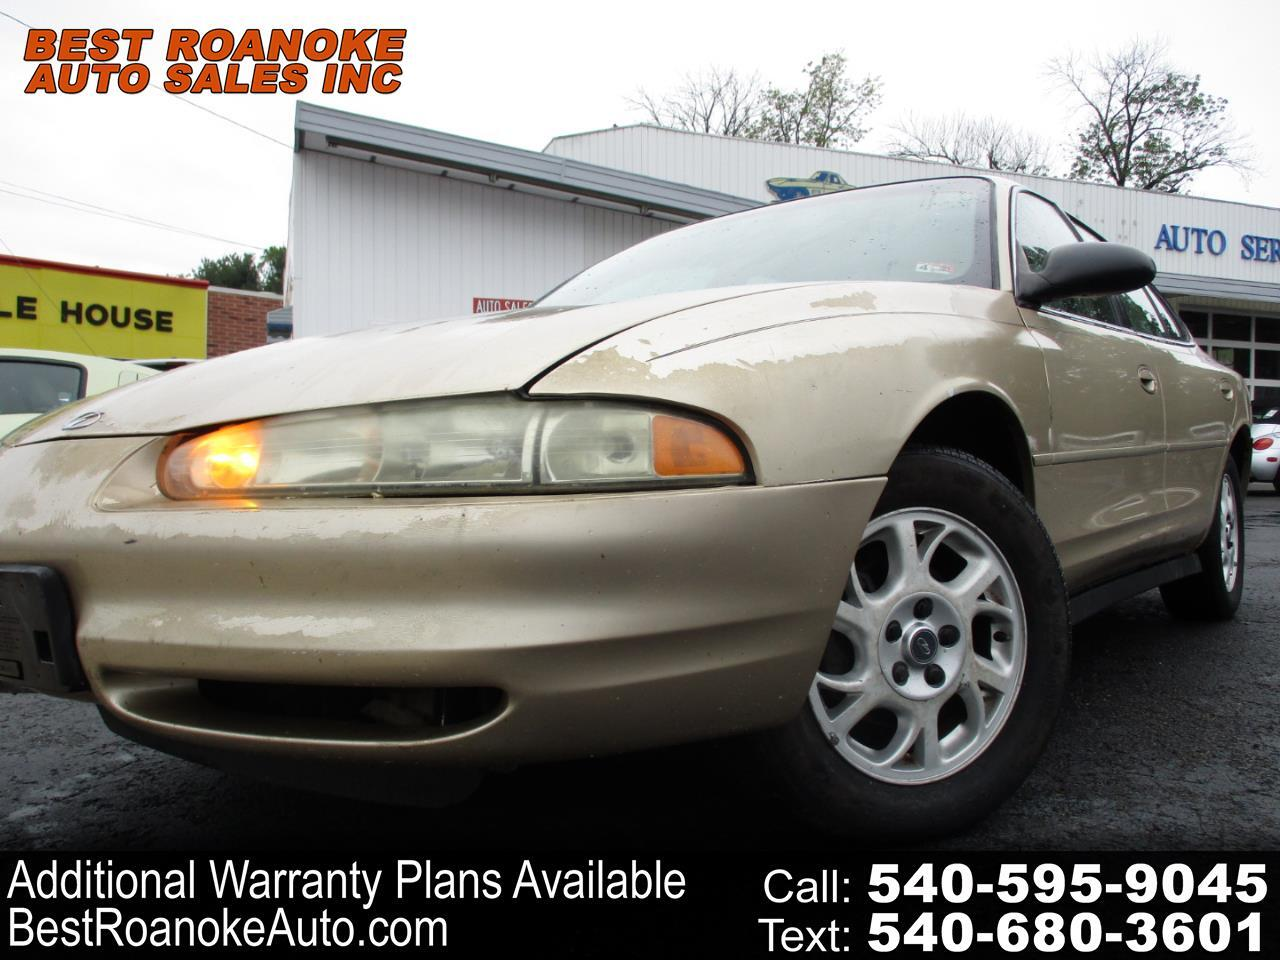 2000 Oldsmobile Intrigue 4dr Sdn GX